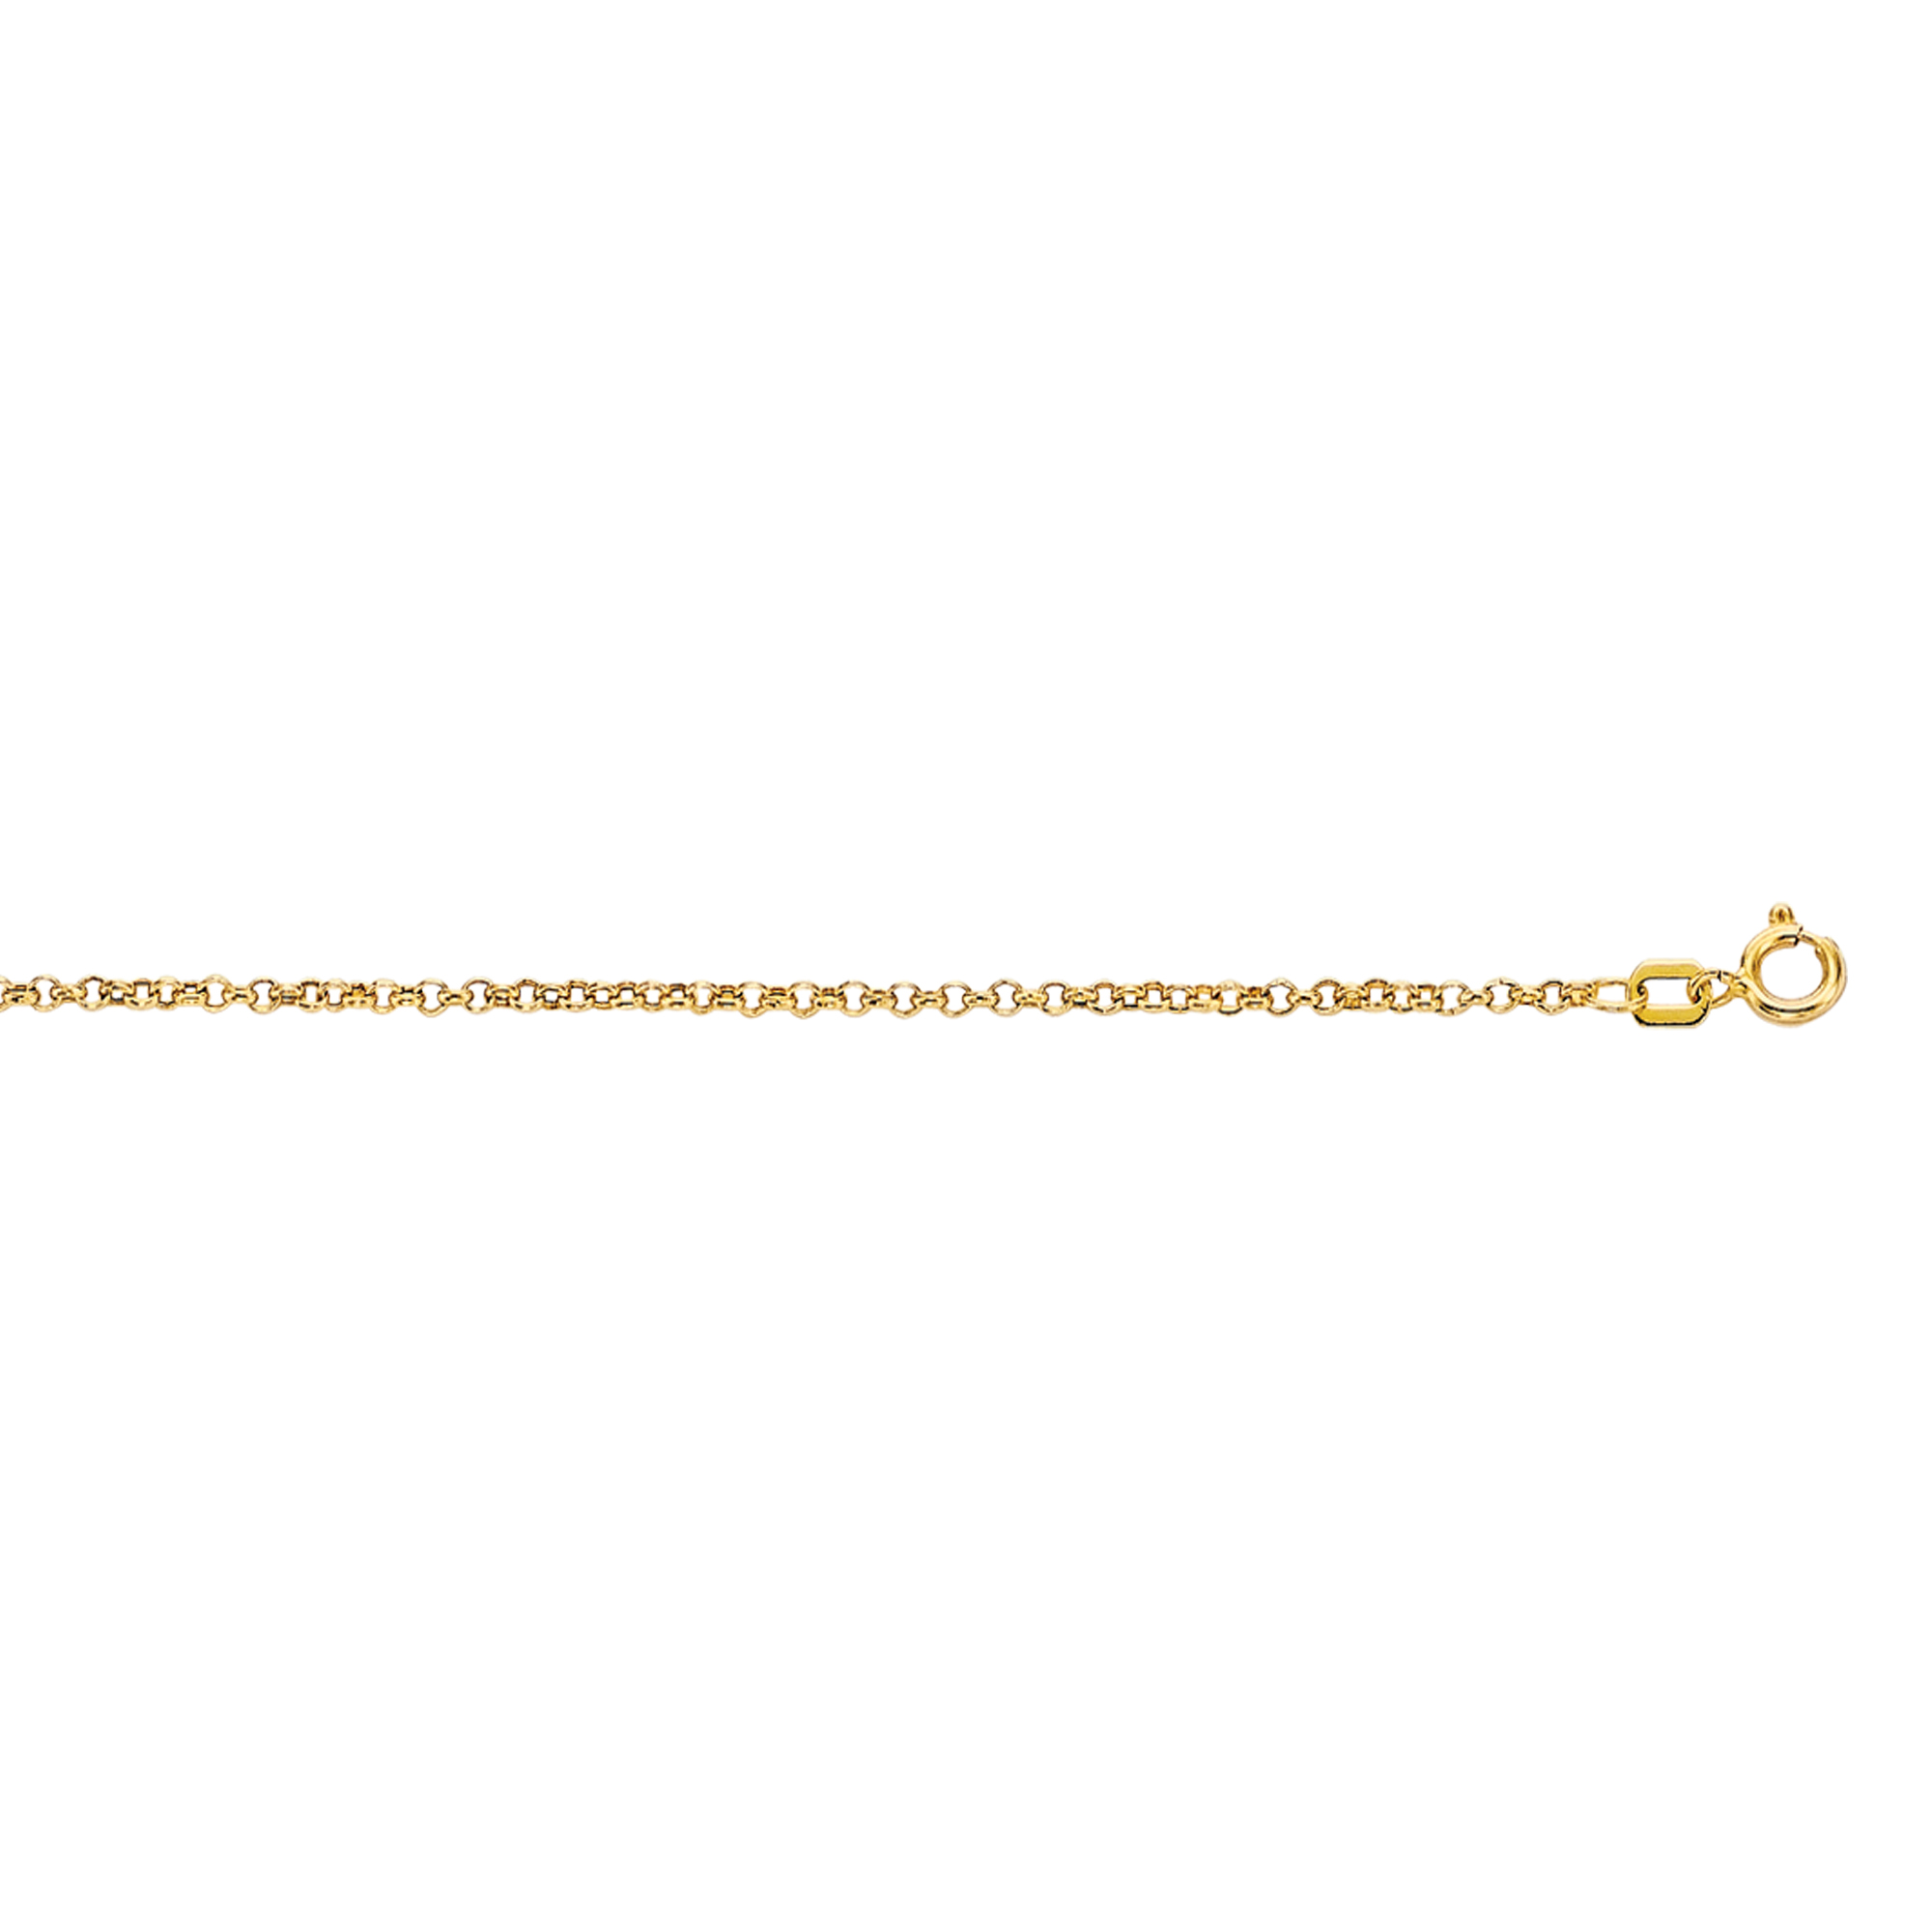 Hollow 10k Gold Rolo Chain For Men & Women 1.9mm Wide Yellow Image